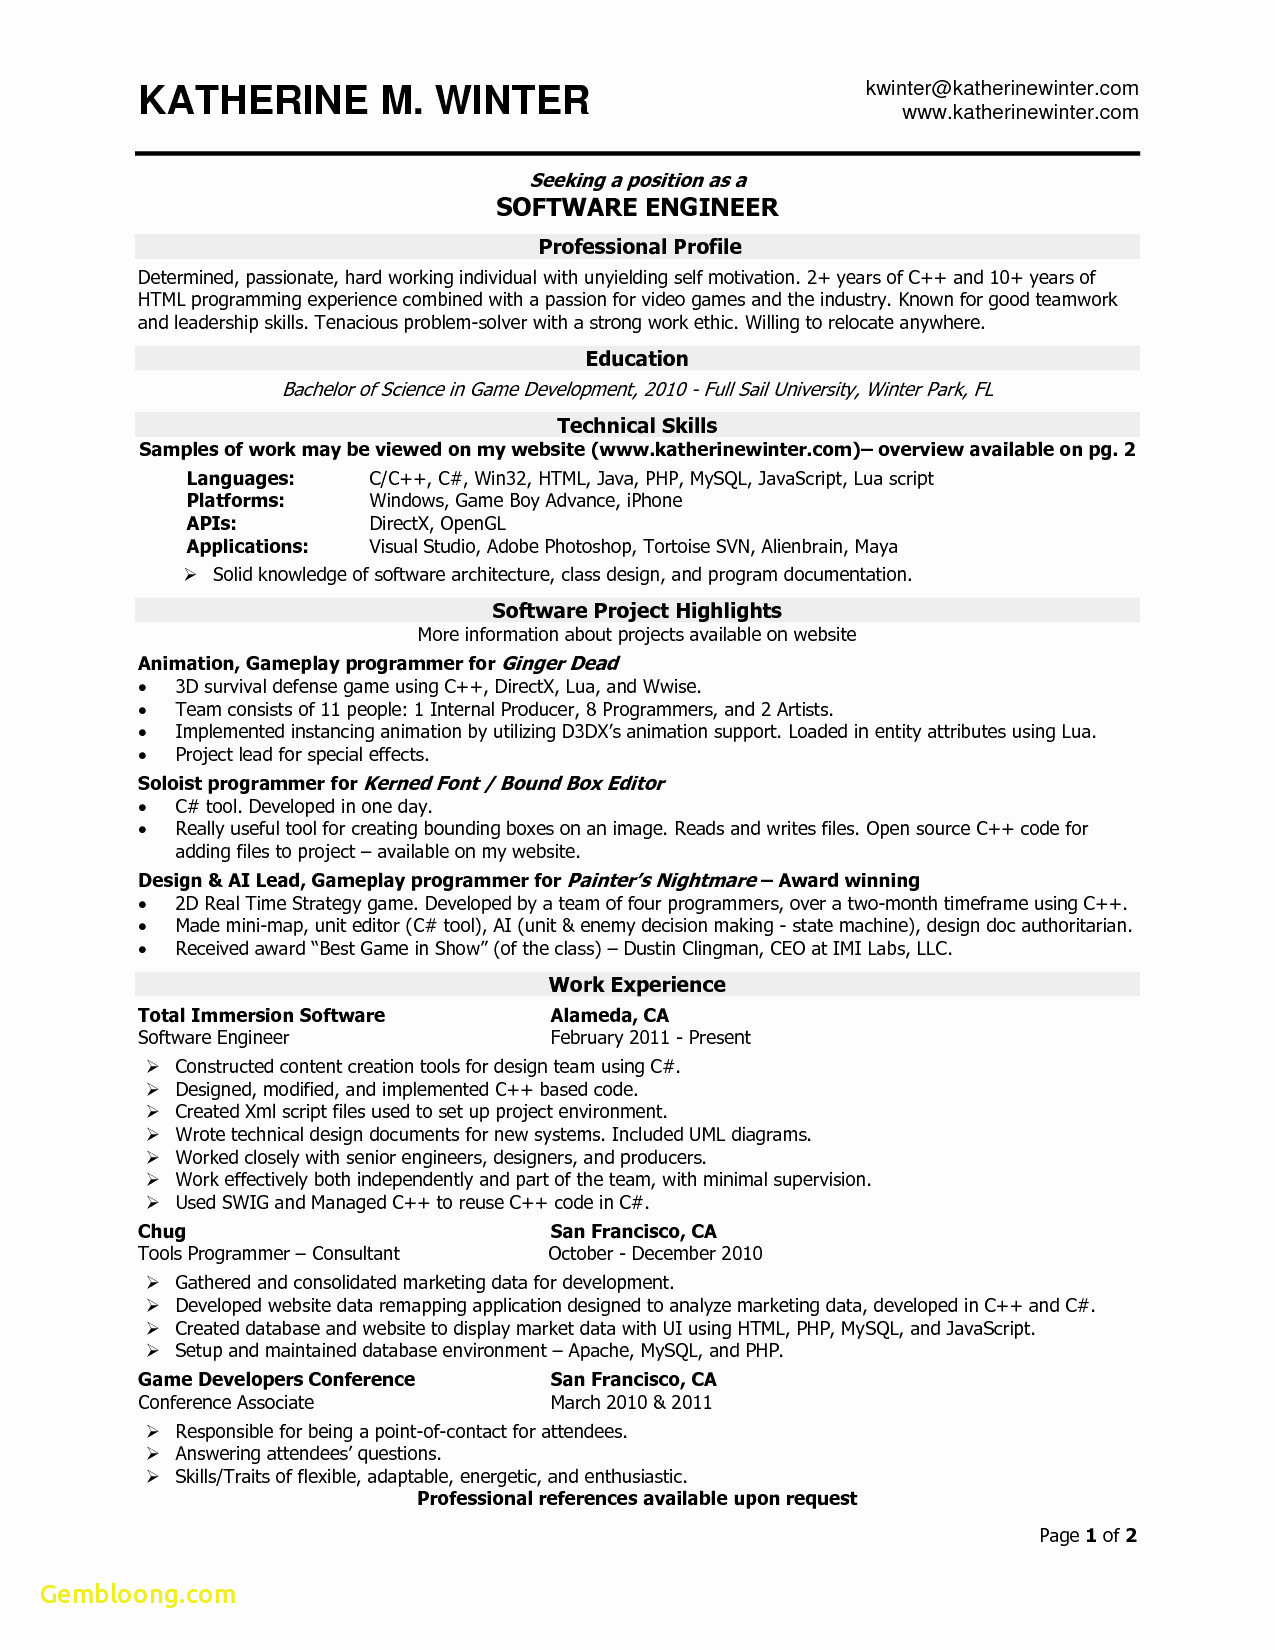 software engineer resume template Collection-Pr Resume New Fresh Pr Resume Template Elegant Dictionary Template 0d Archives Download Awesome Pr Resume from software engineer resume templates 17-o